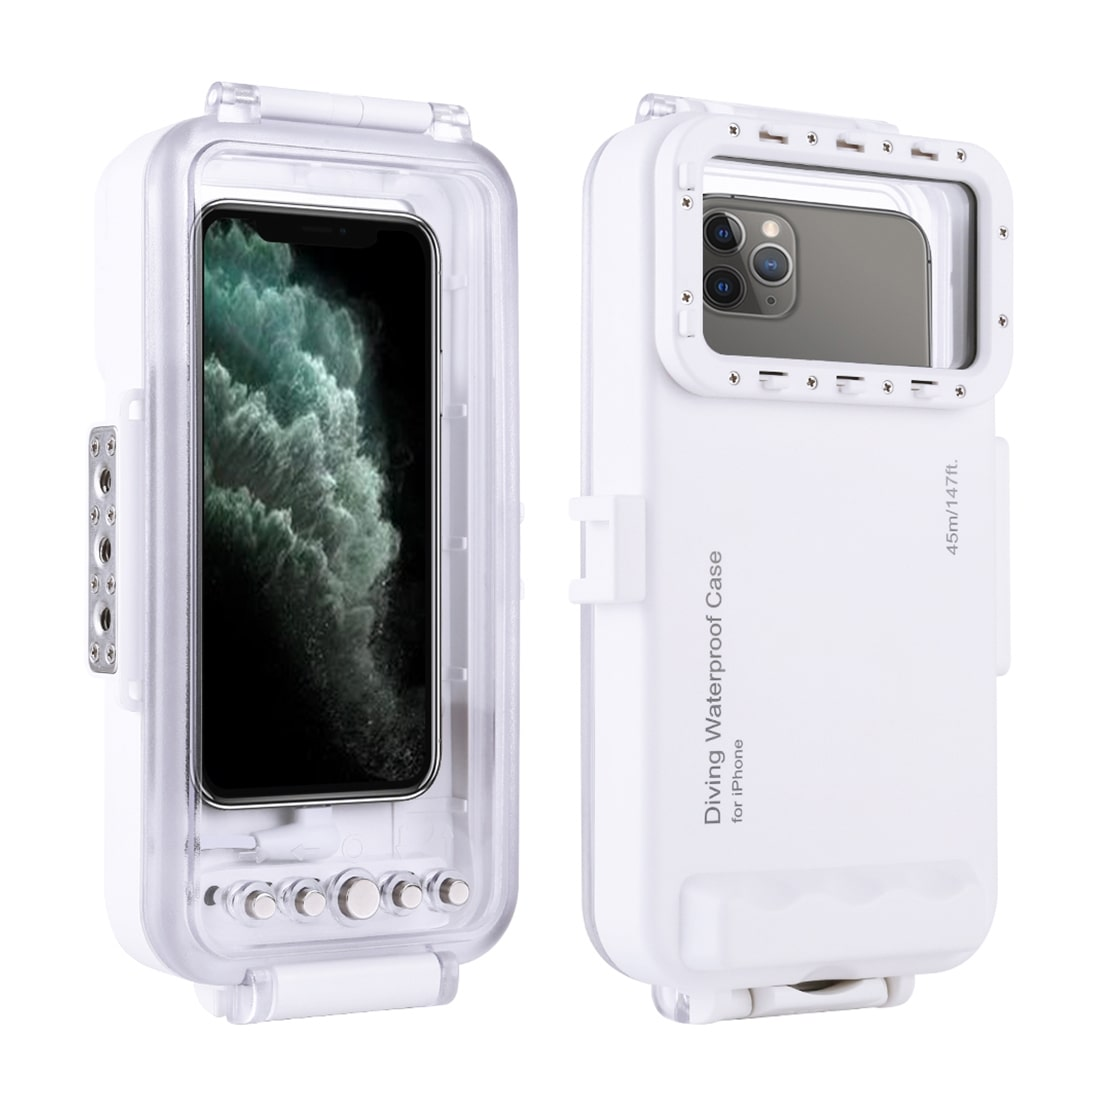 45m waterproof case for iPhone 11 Pro